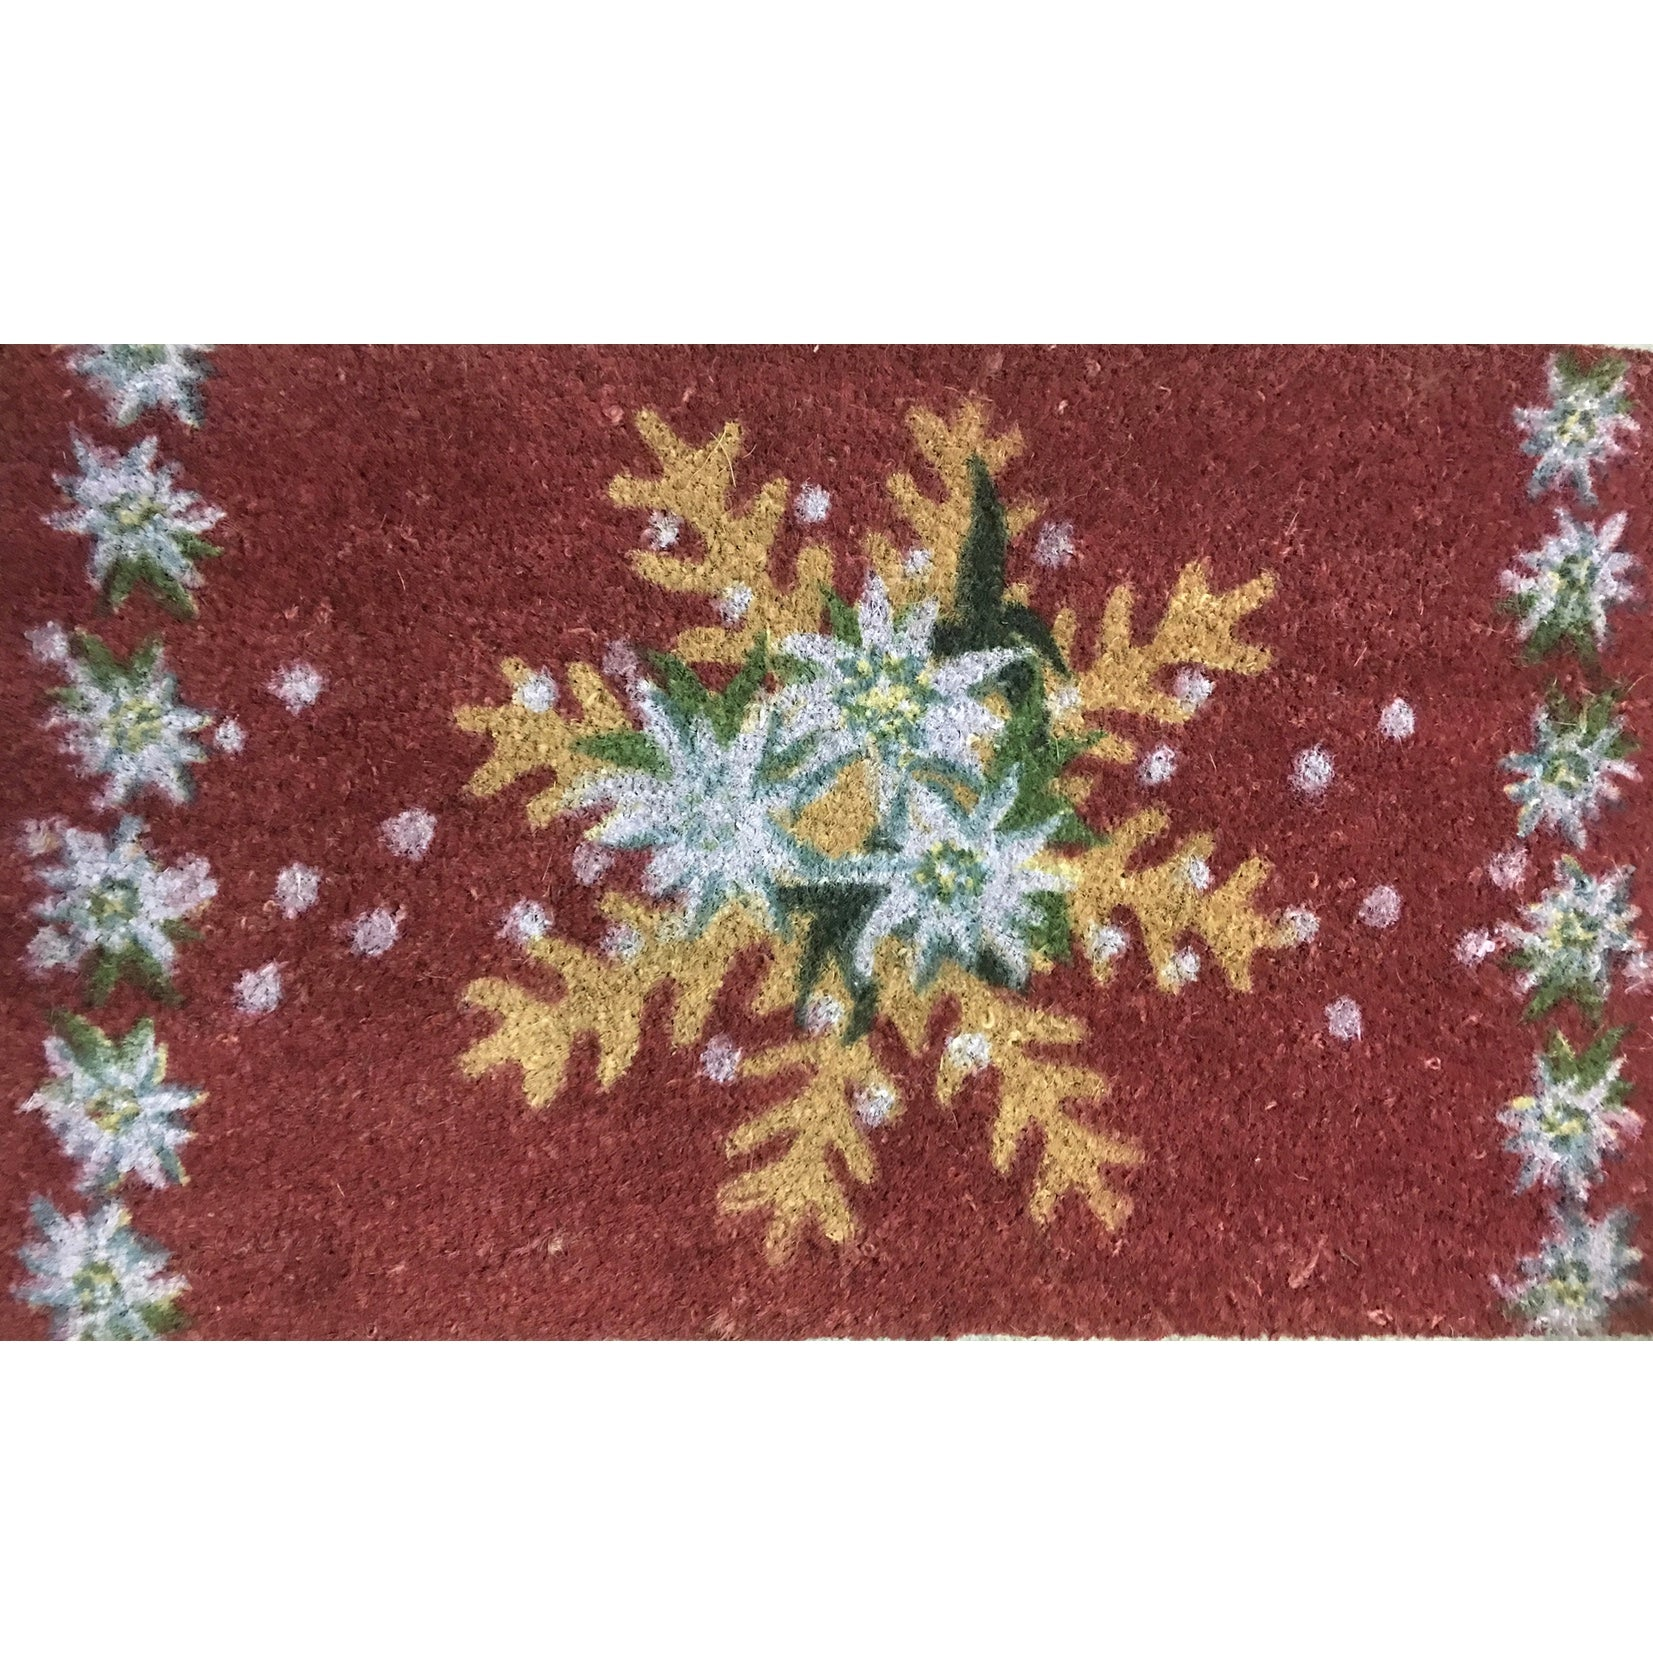 Snowflake Printed Coir Doormat, HI-Harman Inc, Putti Fine Furnishings